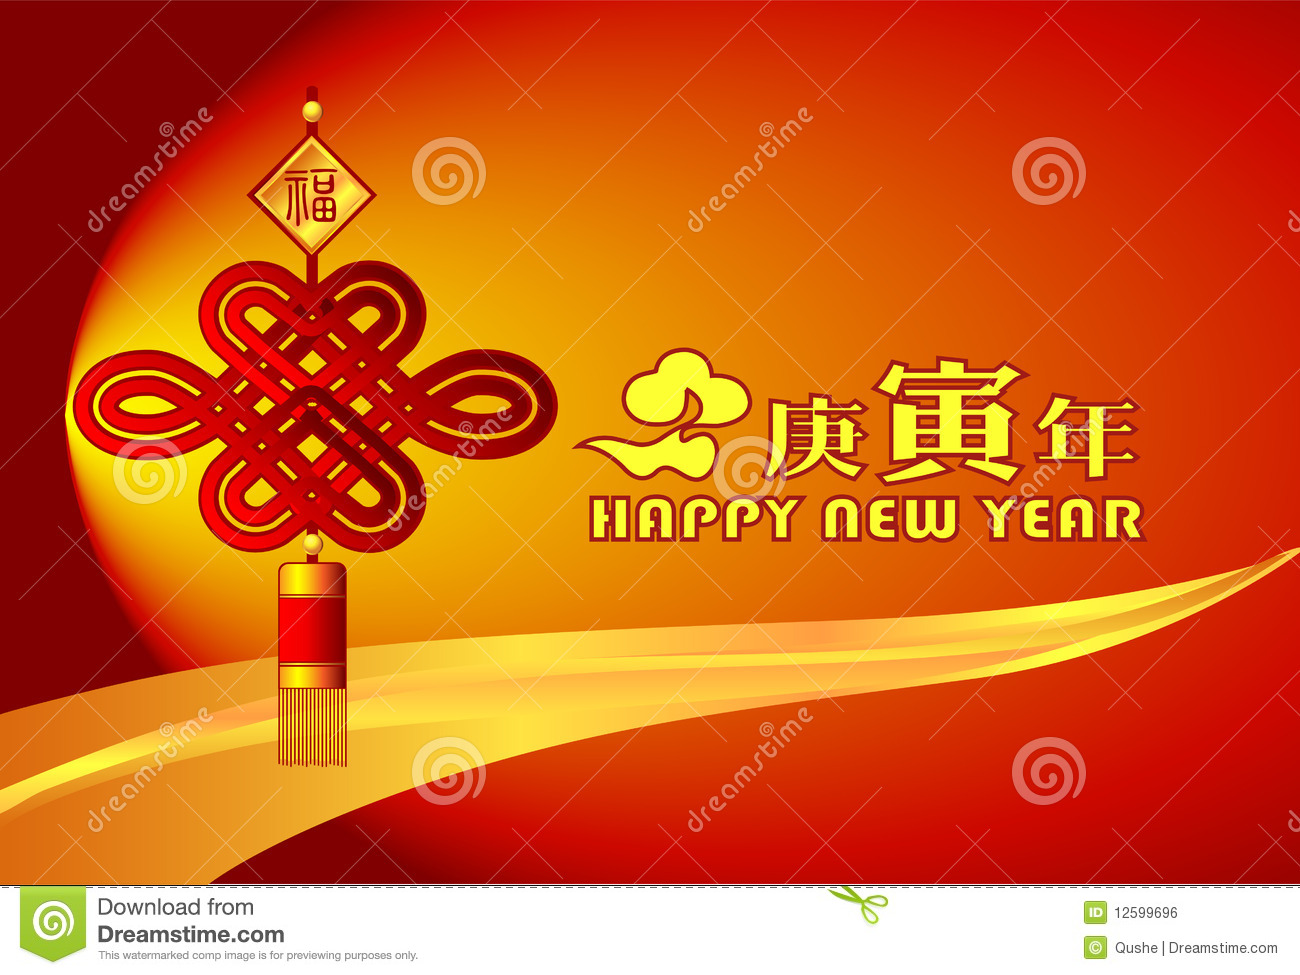 Chinese new year greetings stock vector illustration of good 2010 chinese new year greeting card royalty free stock image kristyandbryce Gallery